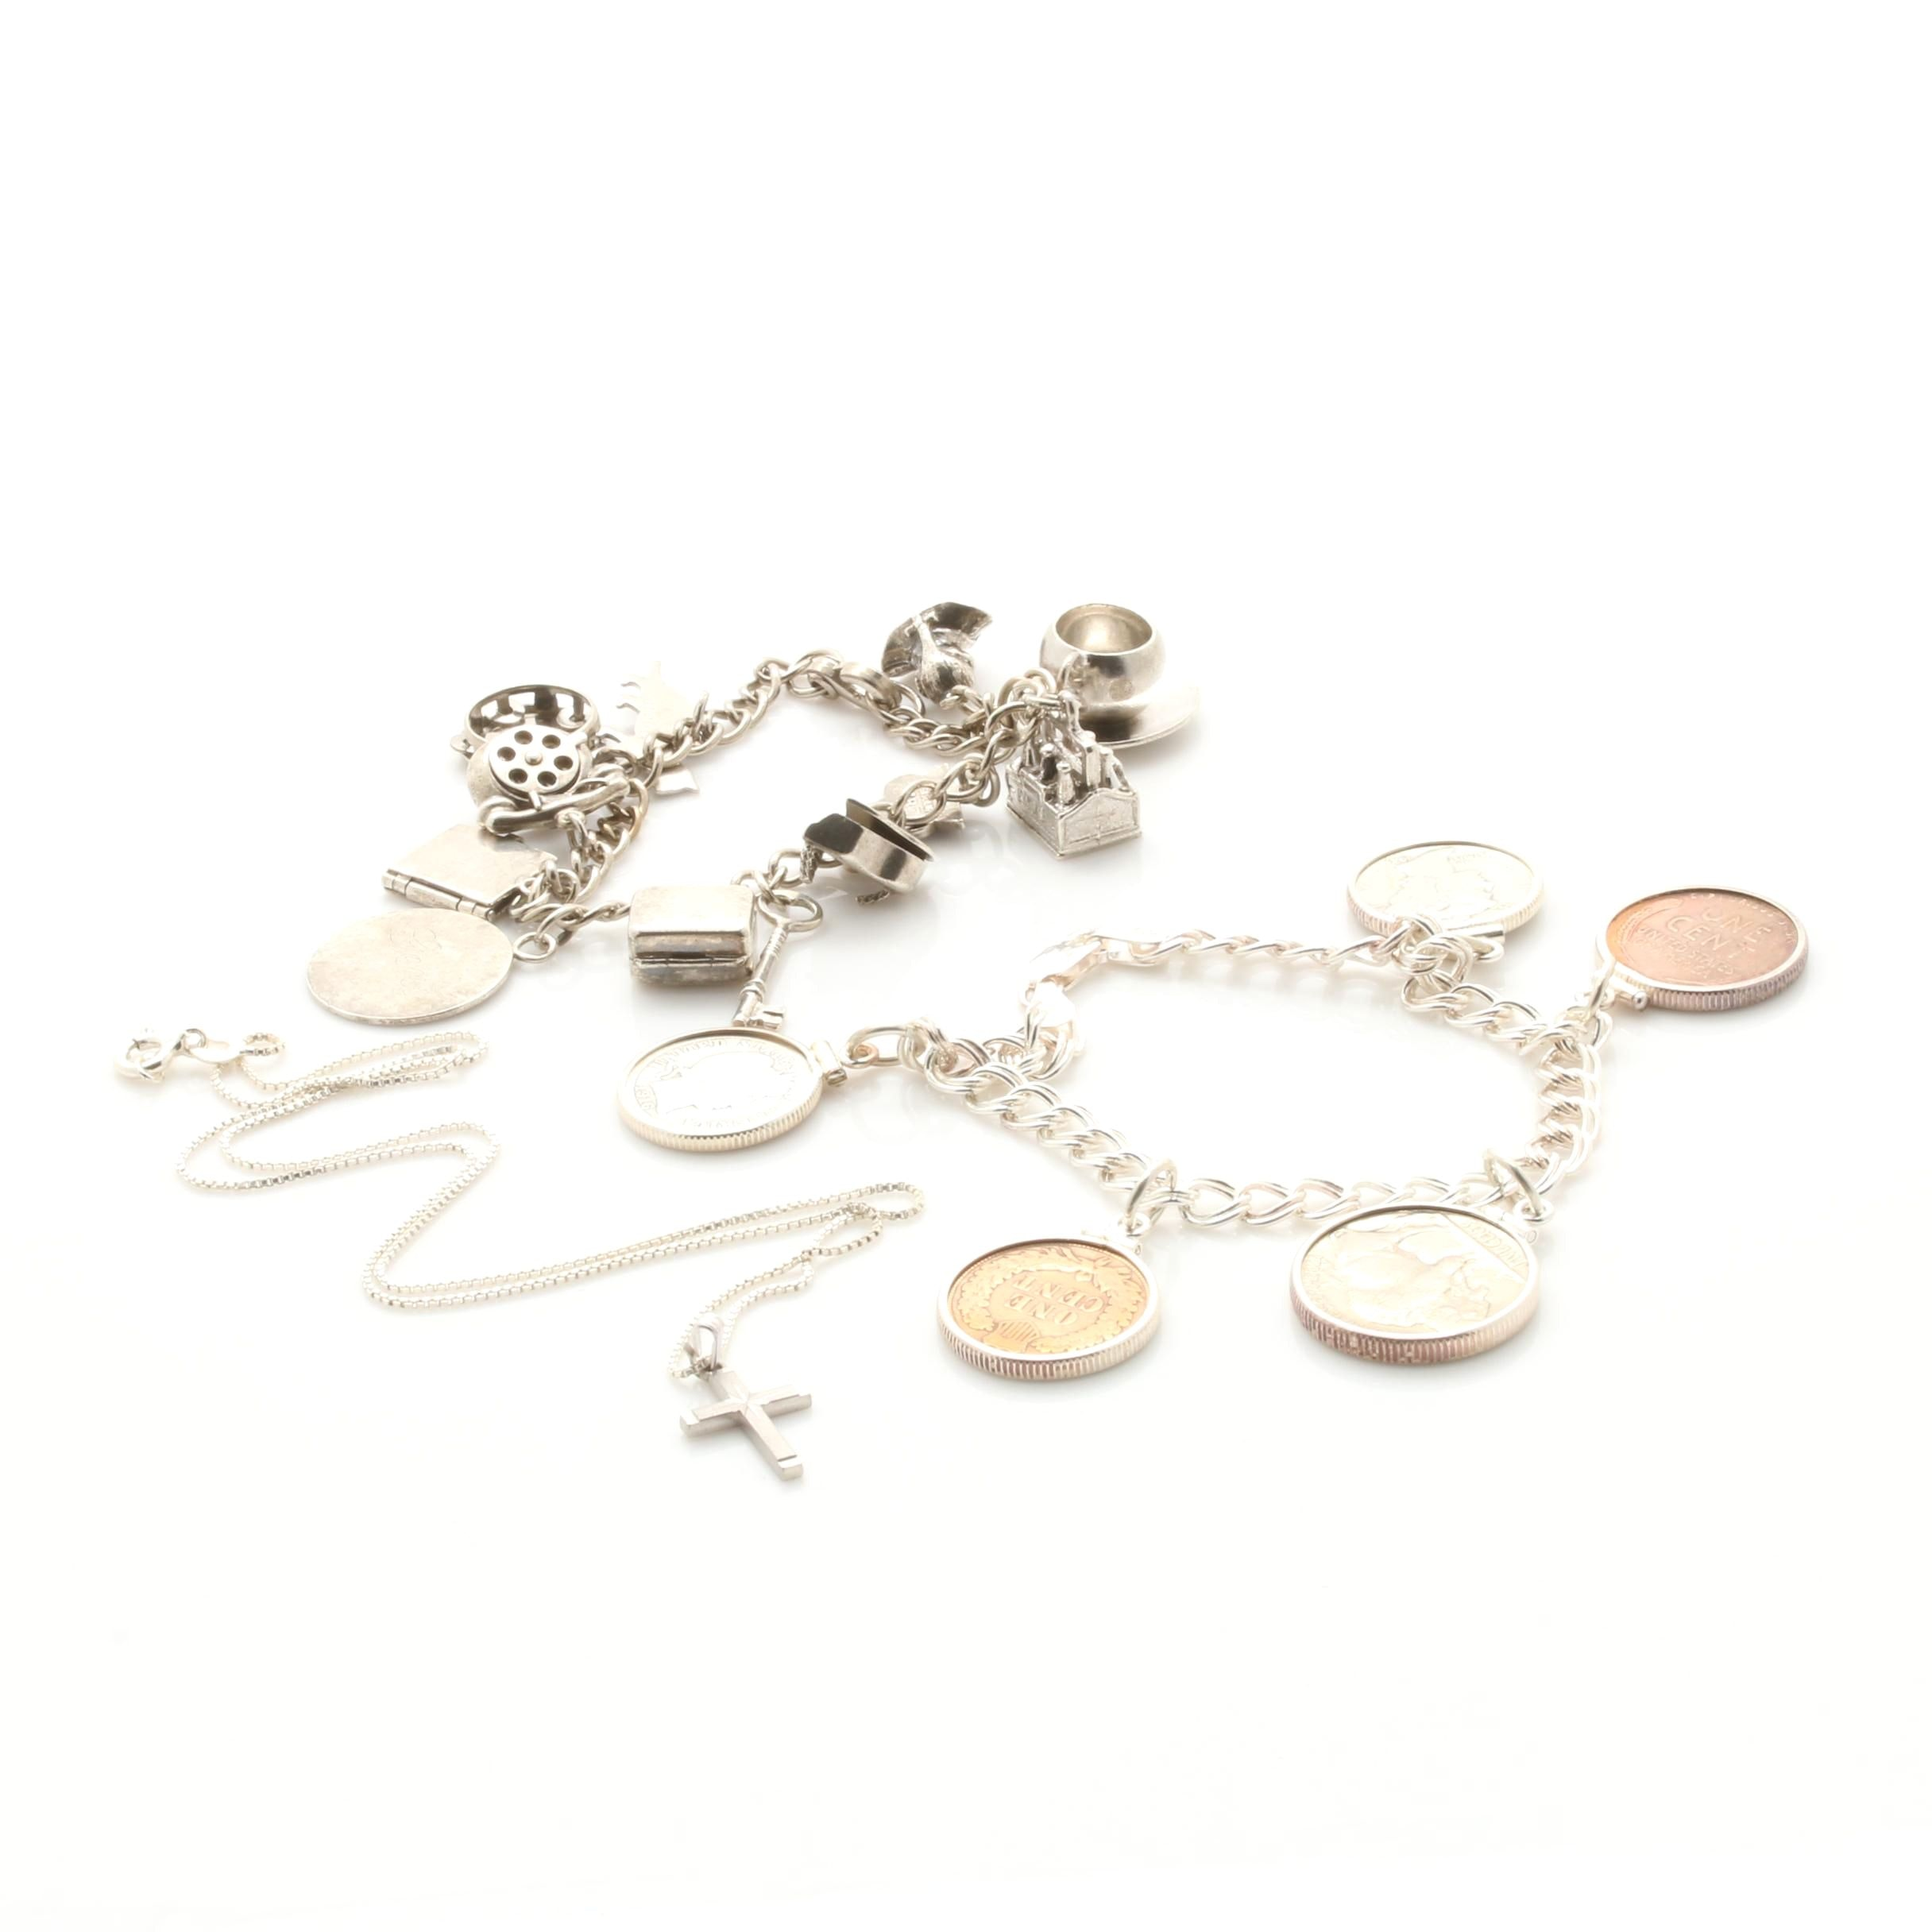 Sterling Silver Jewelry Including Coins, Charms, and a Pendant